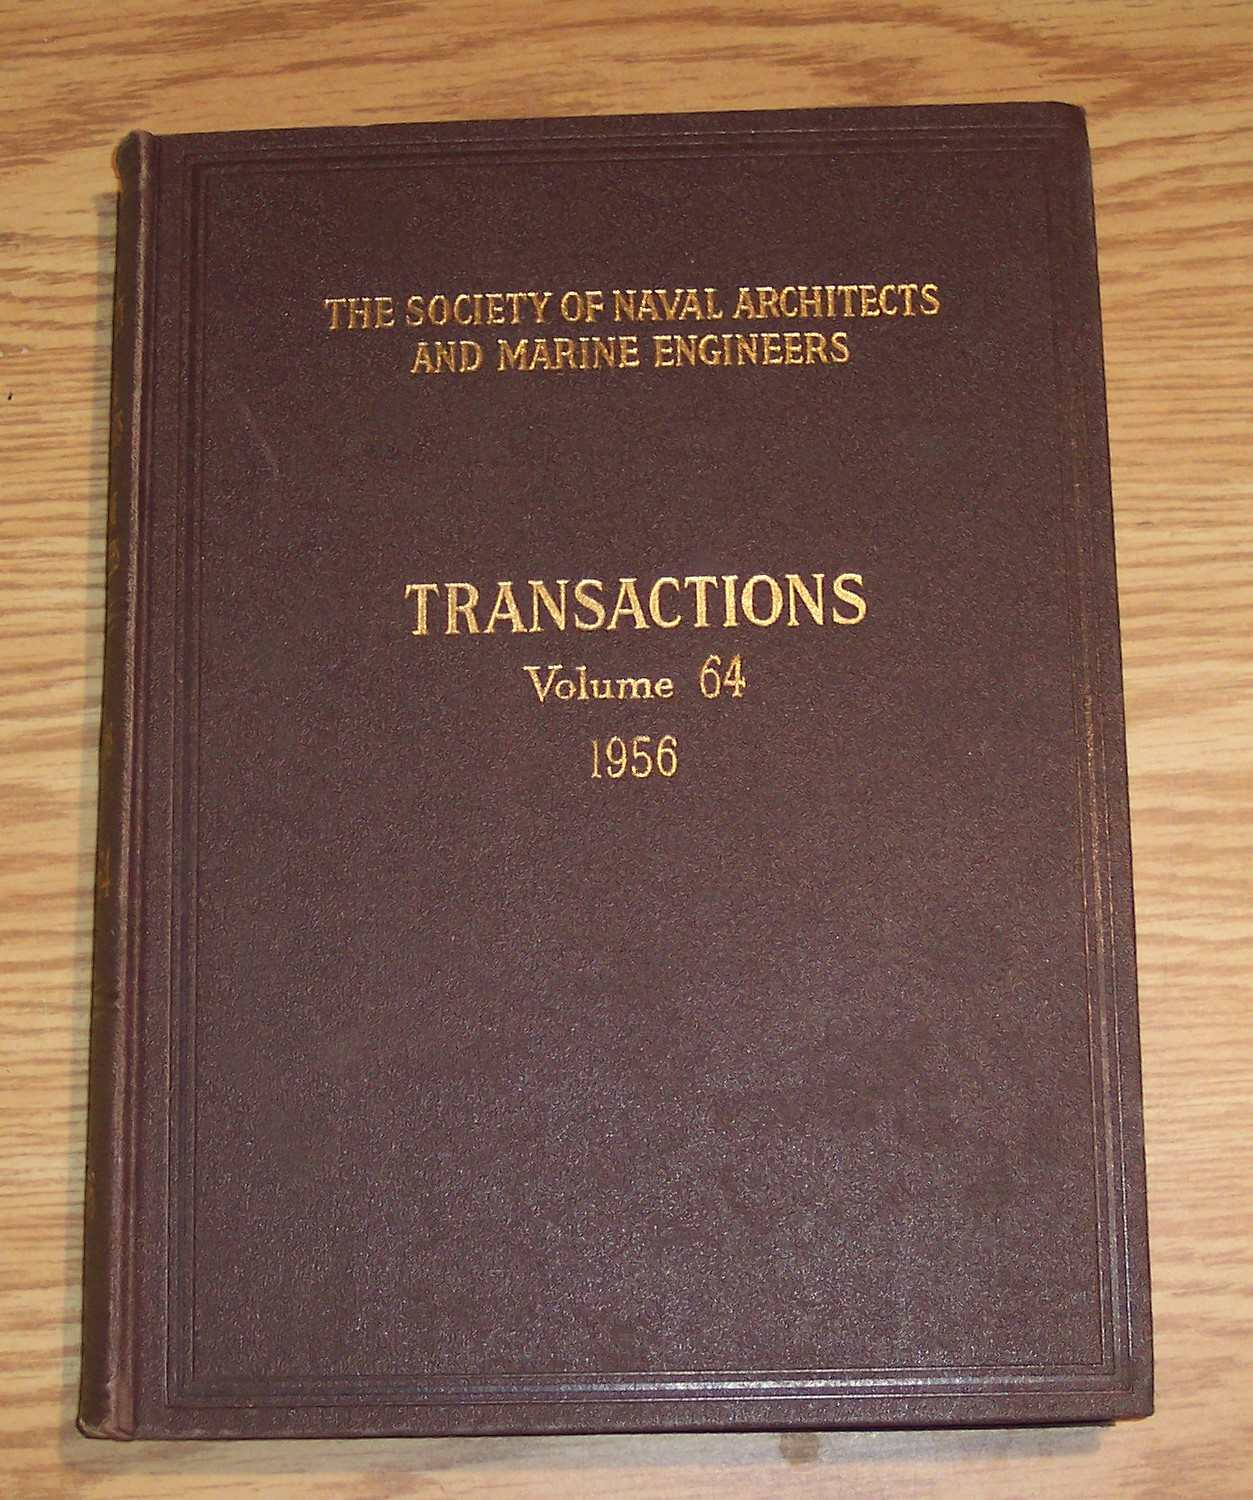 Image for The Society of Naval Architects and Marine Engineers Transactions Volume 64 1956